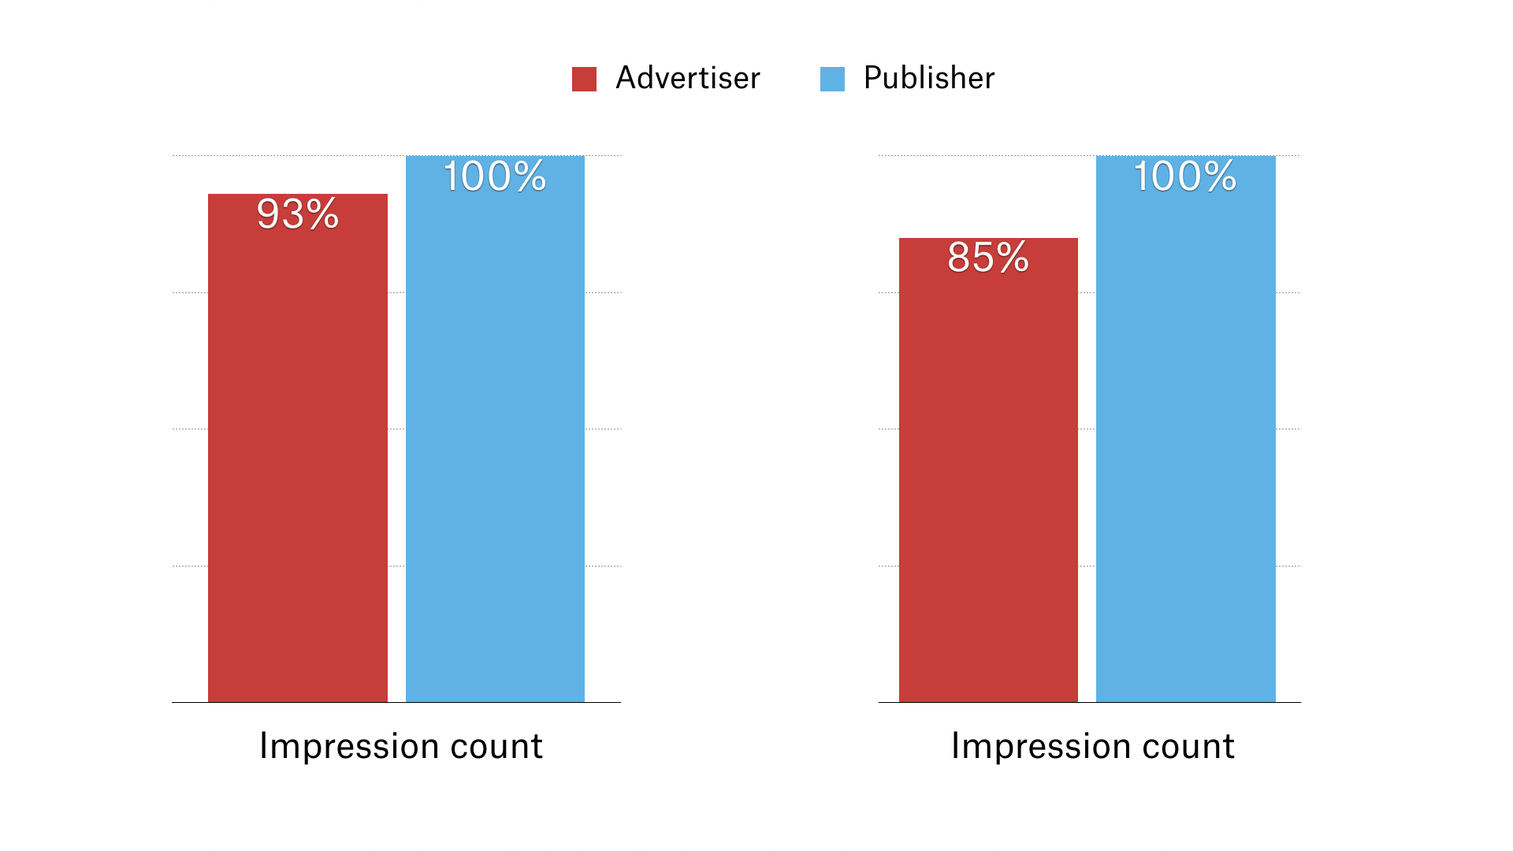 Impression discrepancies between advertisers and publishers